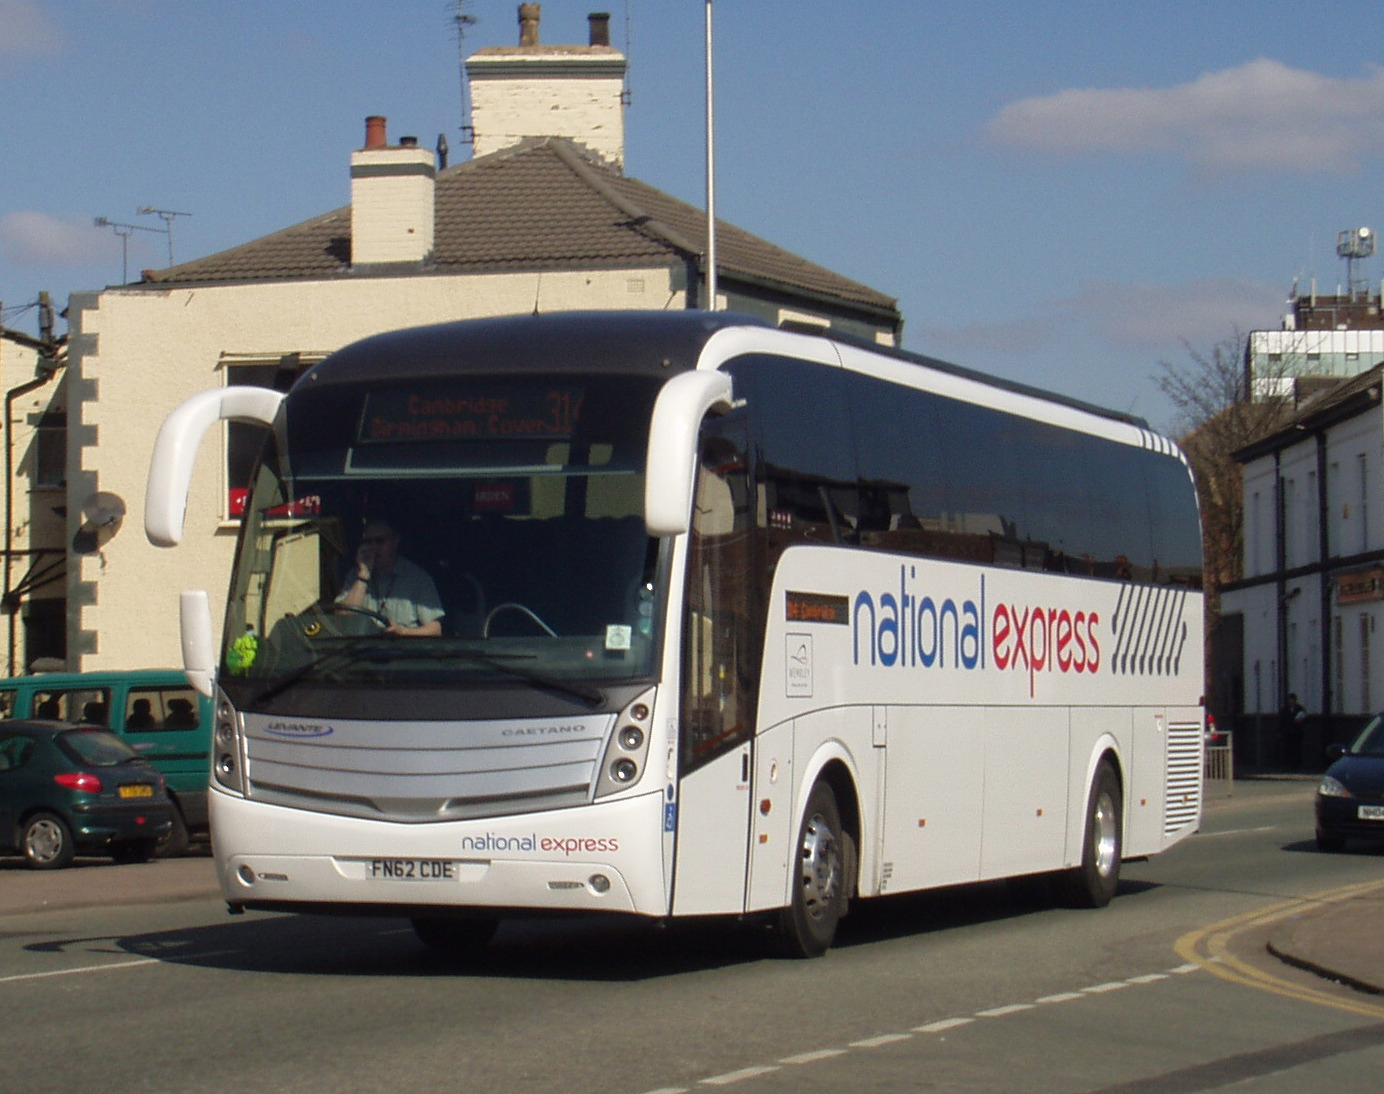 Travel for $9 one way on the national express this autumn